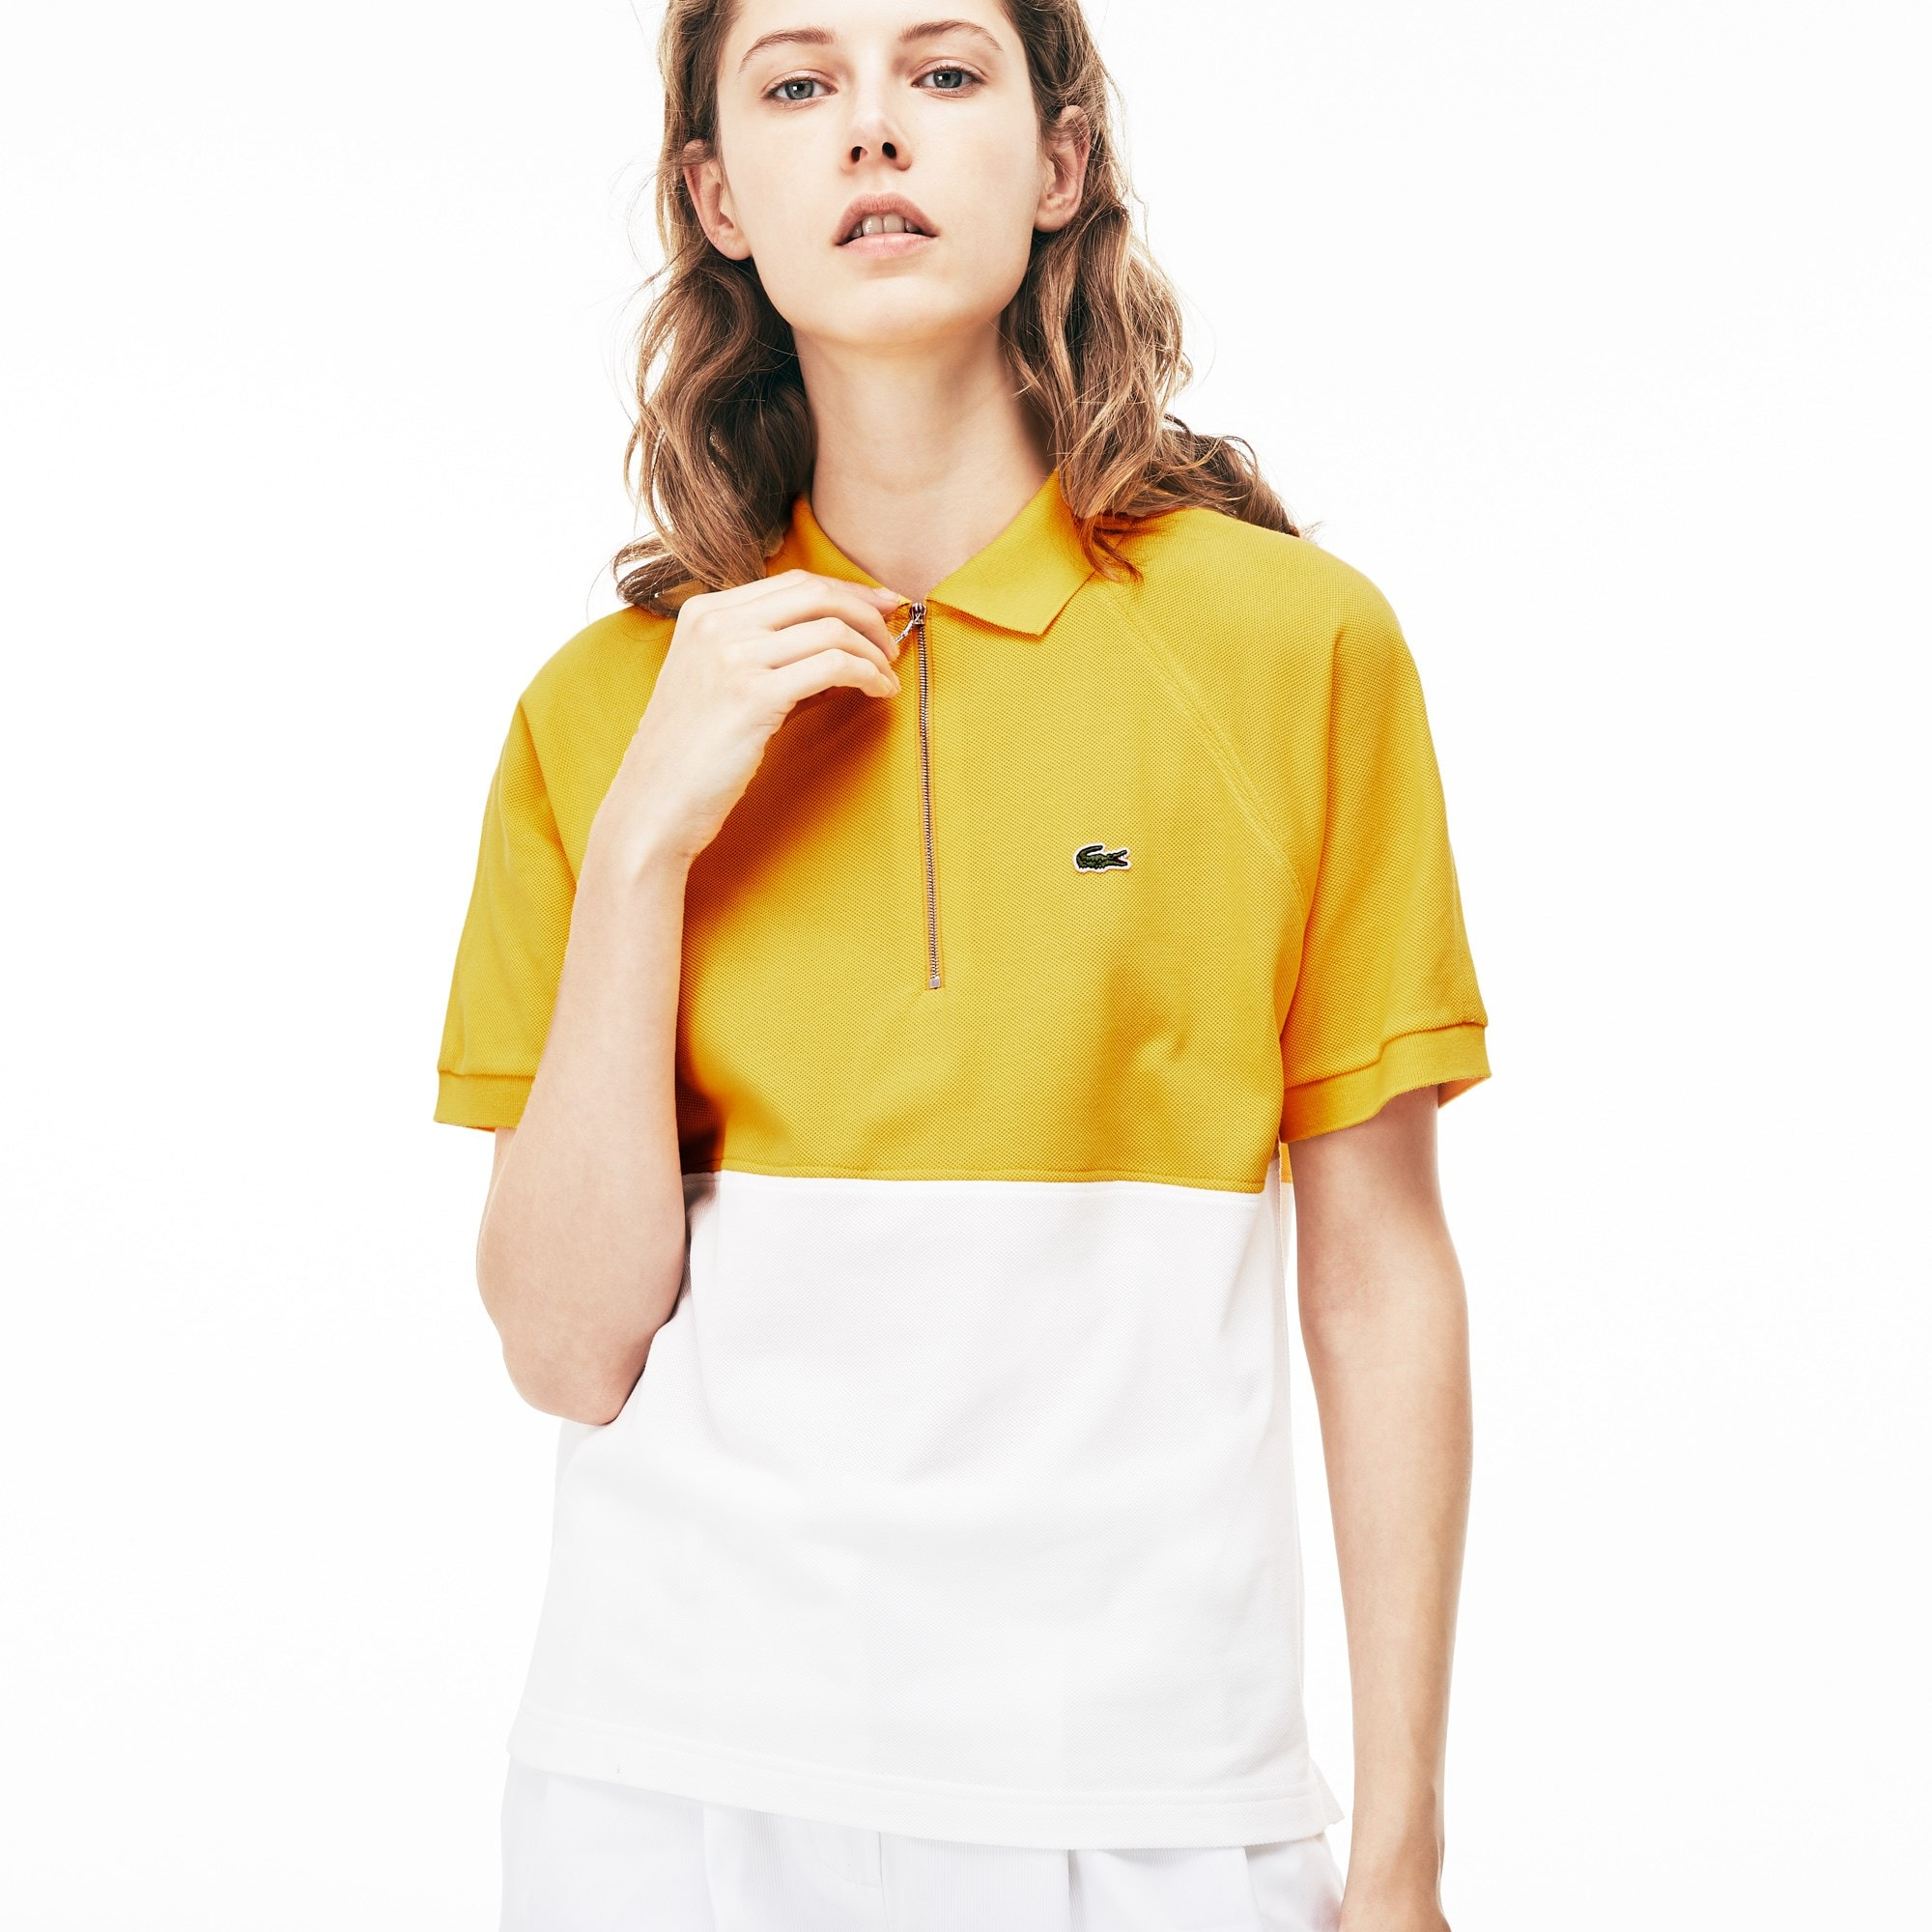 Women's Lacoste Slim Fit Colorblock Cotton Petit Piqué Polo Shirt